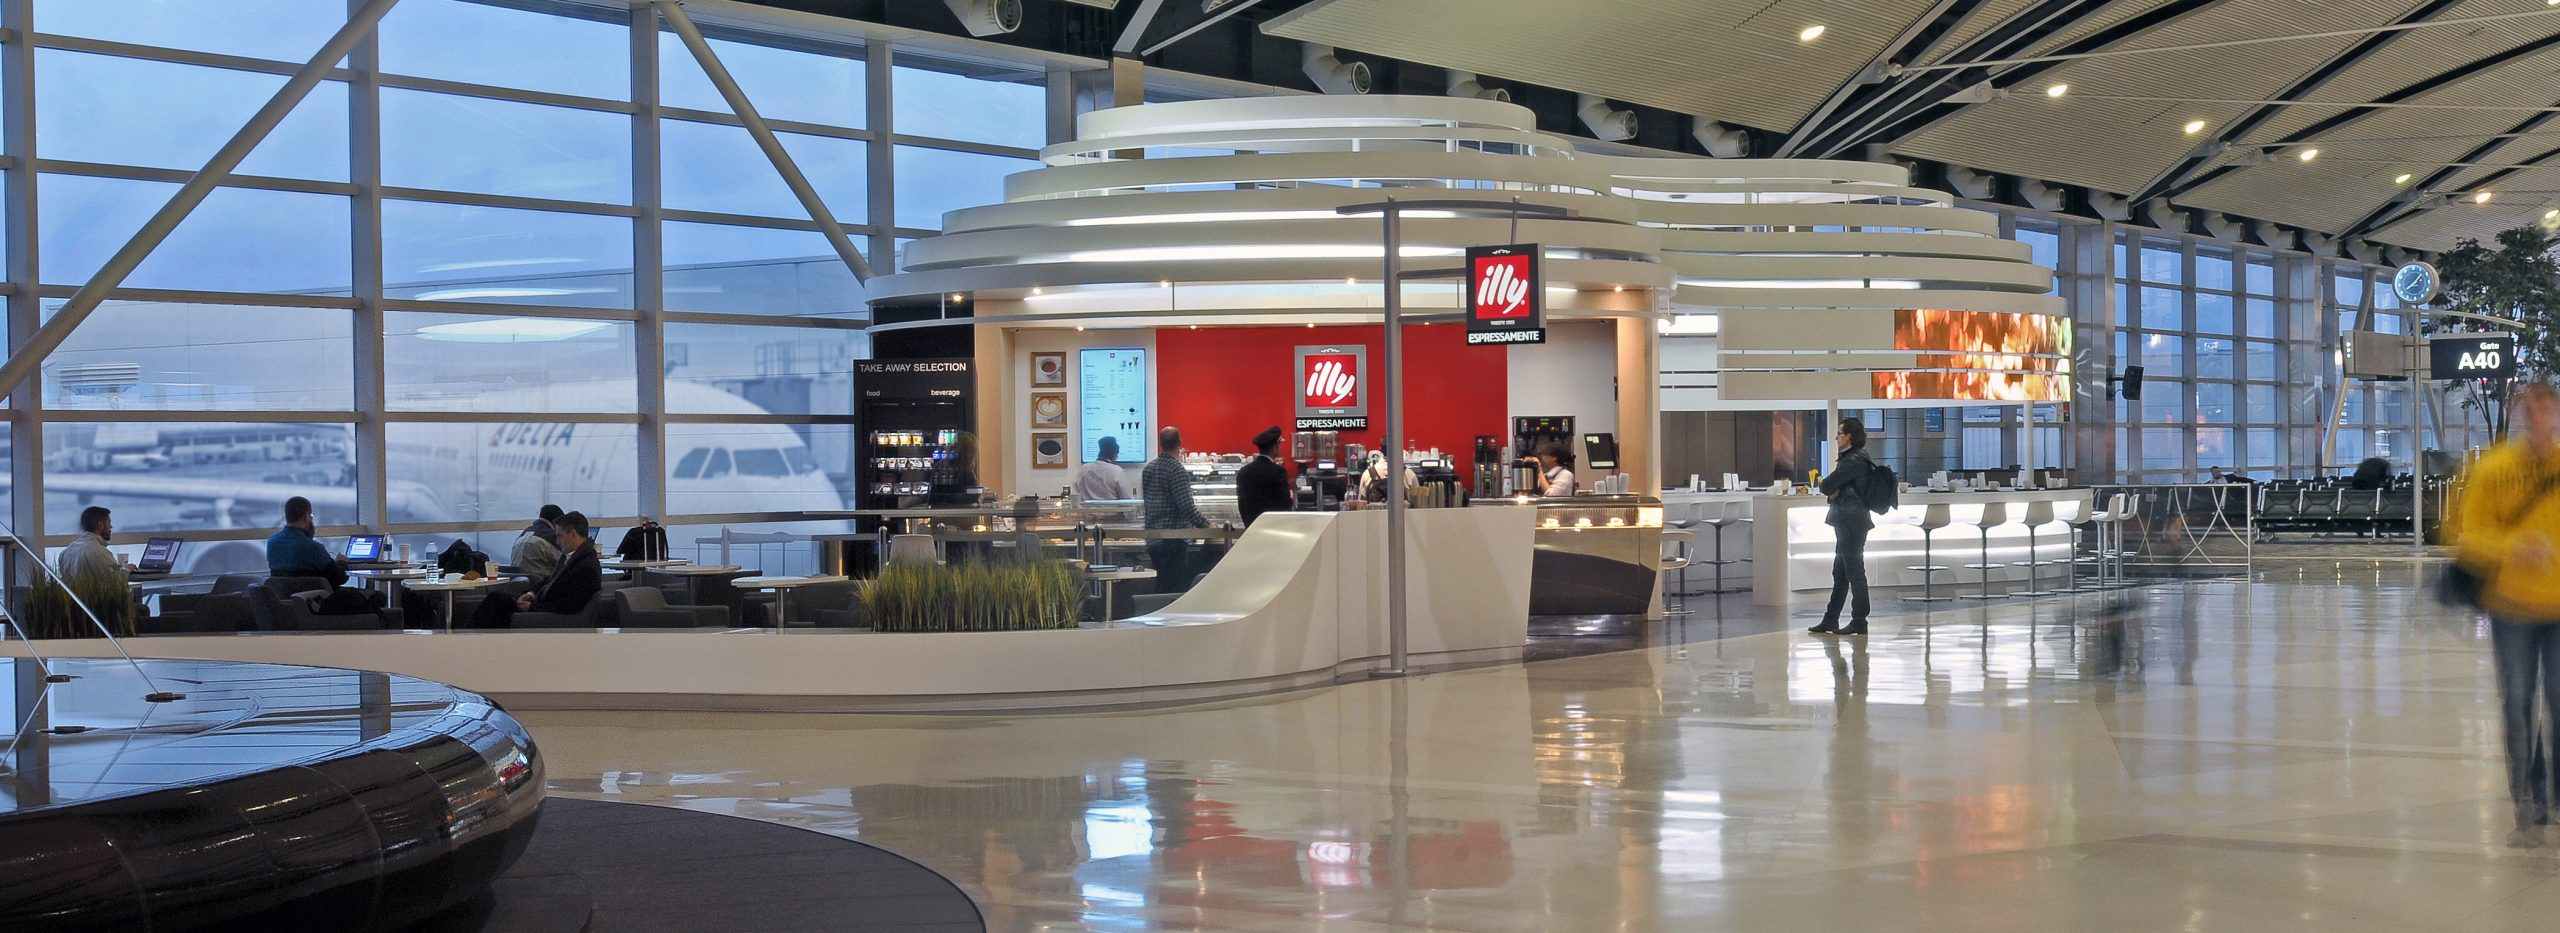 People sitting and ordering at illy Caffe and Coffee Bar Project in Detroit Metro Airport McNamara Terminal collaboration with Studio H2G Interior Architecture